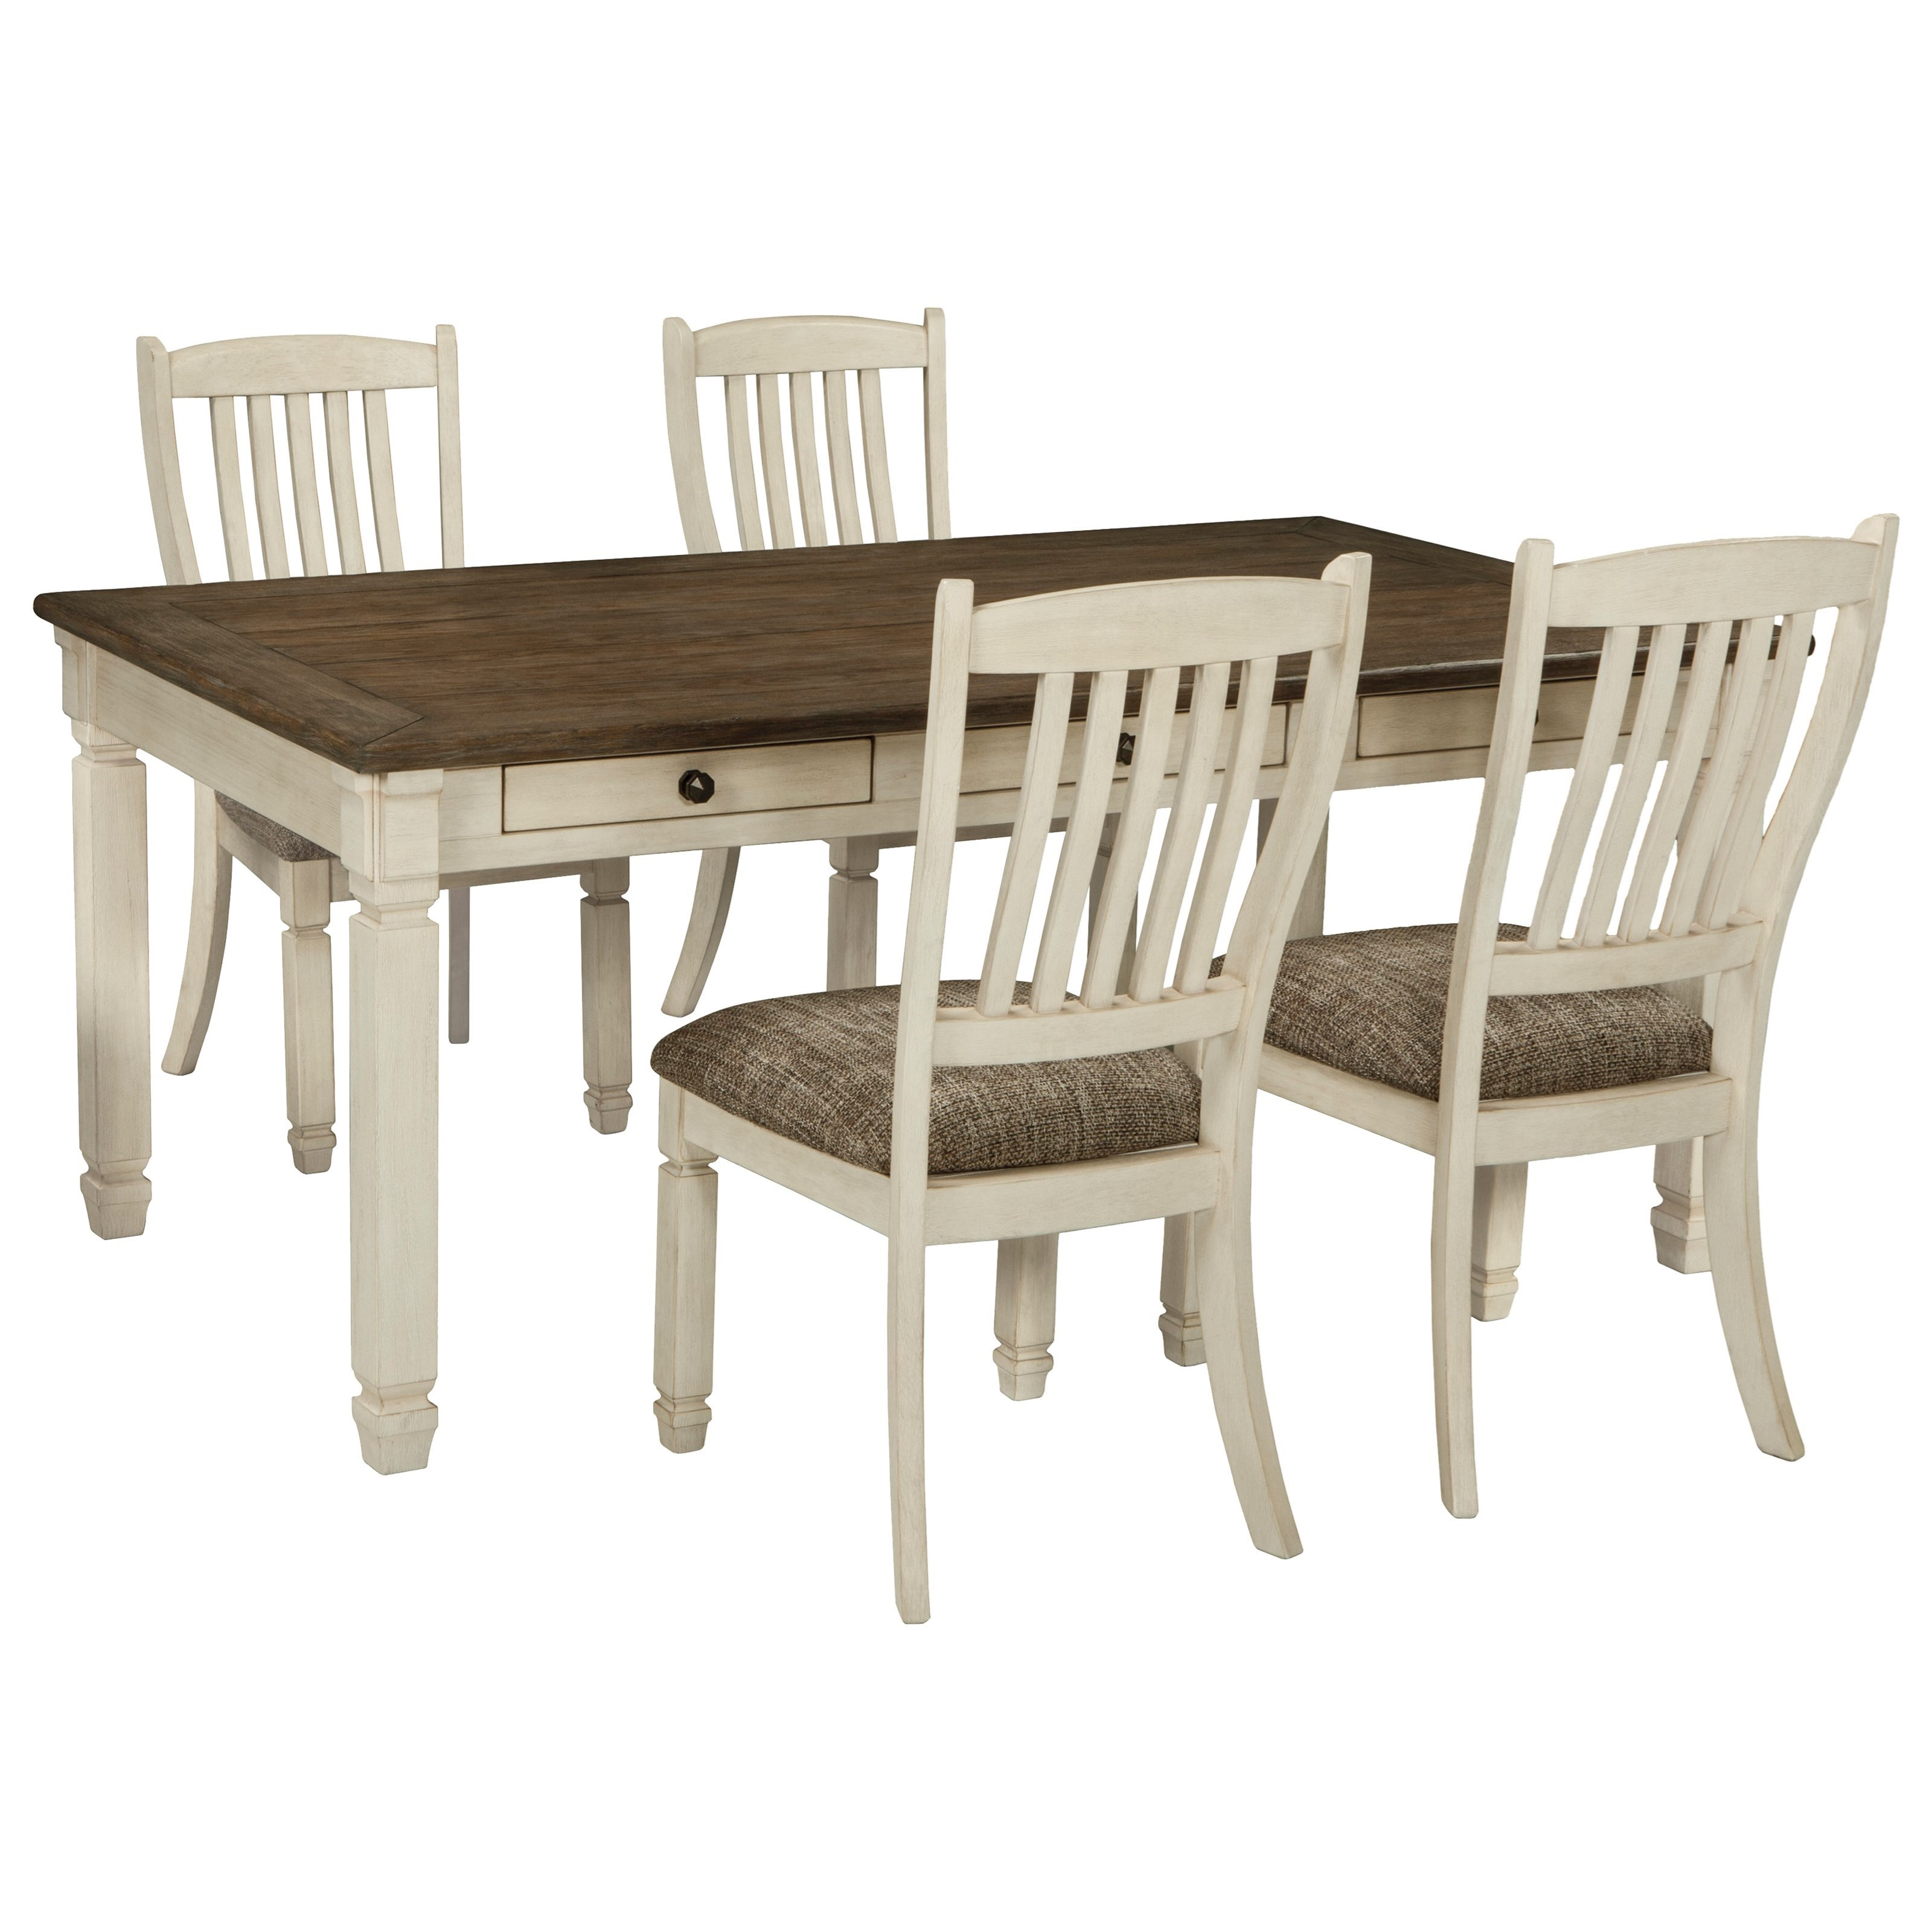 table chair set alps mountaineering king kong signature design by ashley bolanburg relaxed vintage 5